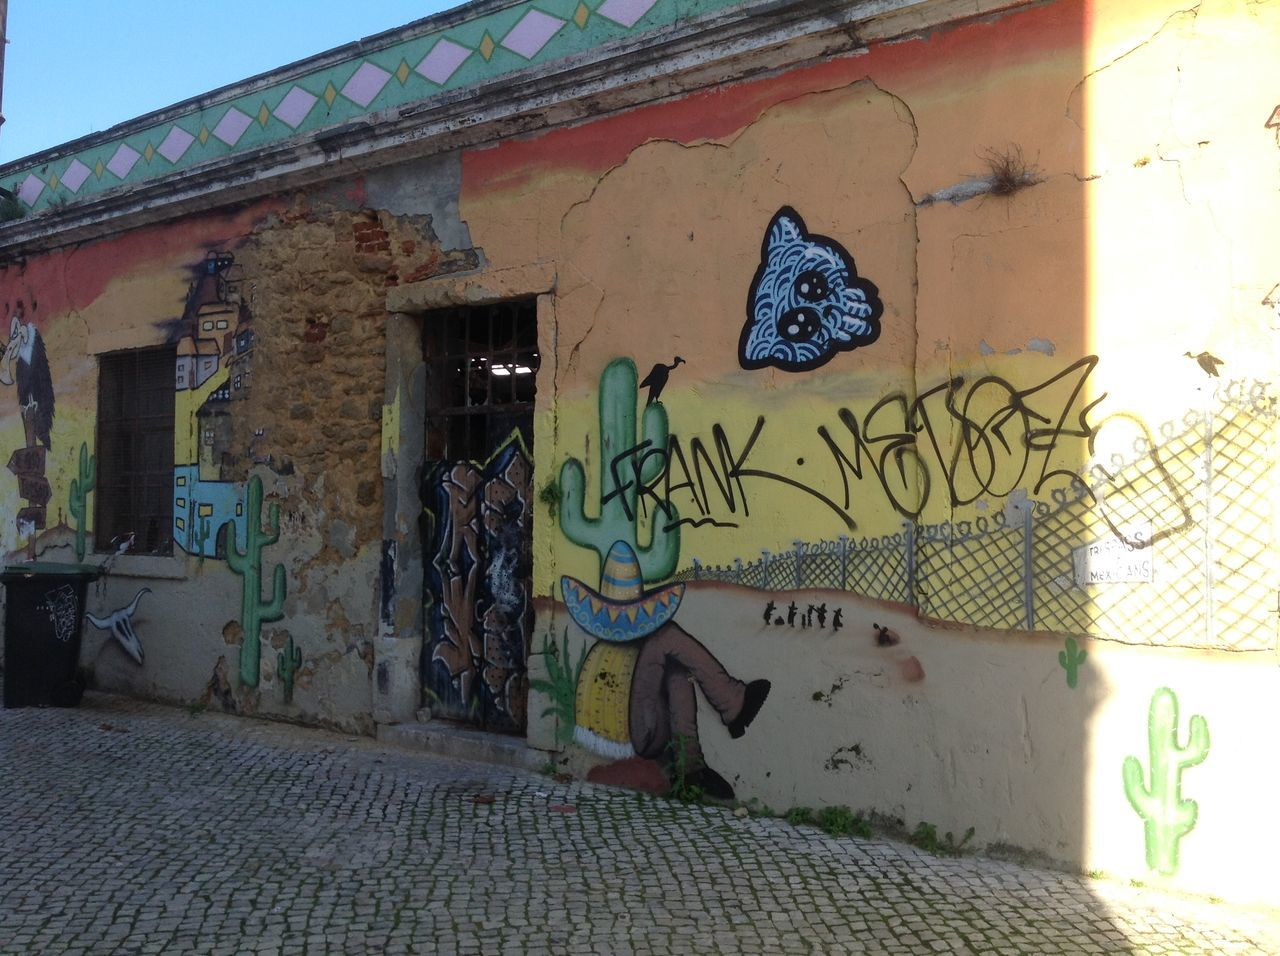 architecture, graffiti, built structure, building exterior, day, outdoors, no people